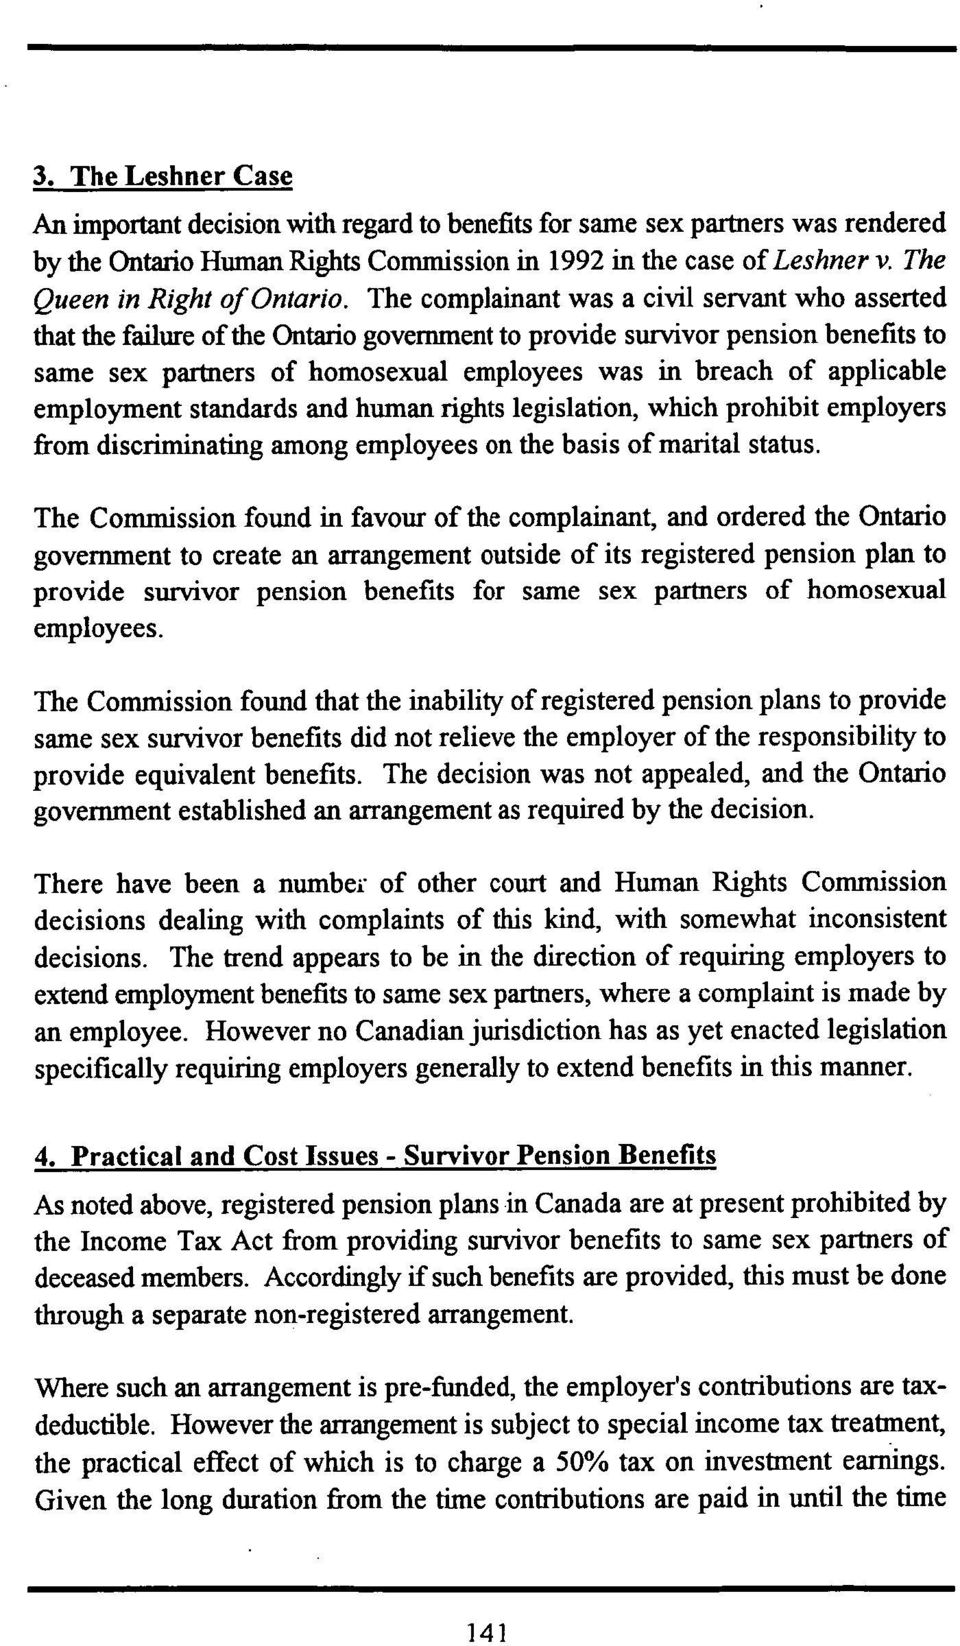 The complainant was a civil servant who asserted that the failure of the Ontario government to provide survivor pension benefits to same sex partners of homosexual employees was in breach of